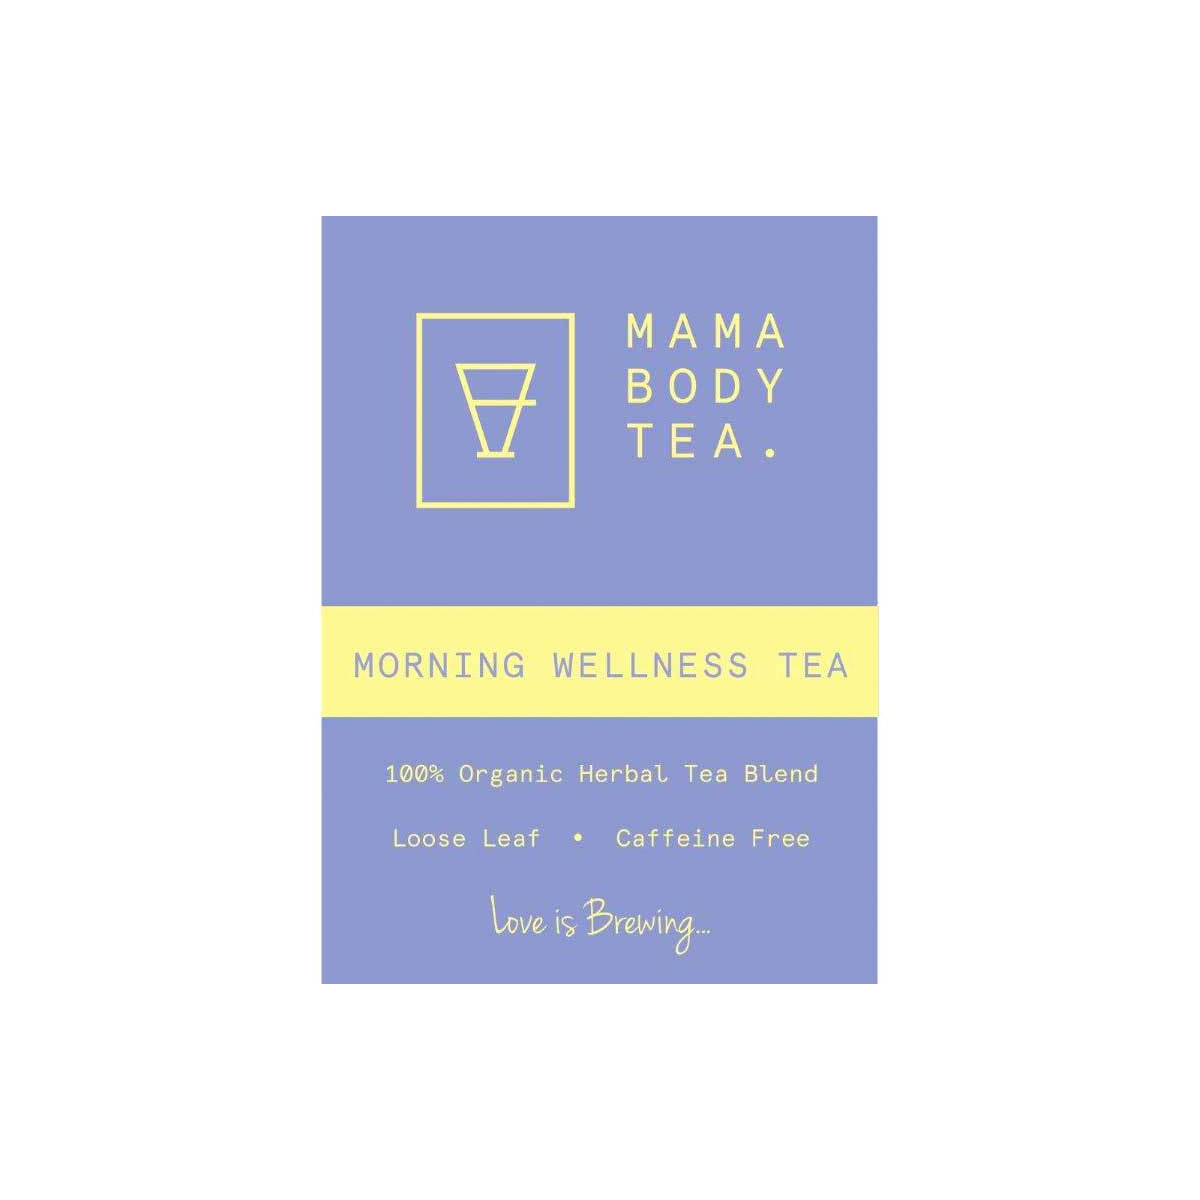 Morning Wellness Tea Mama Body Tea Tea and Infusions at Little Earth Nest Eco Shop